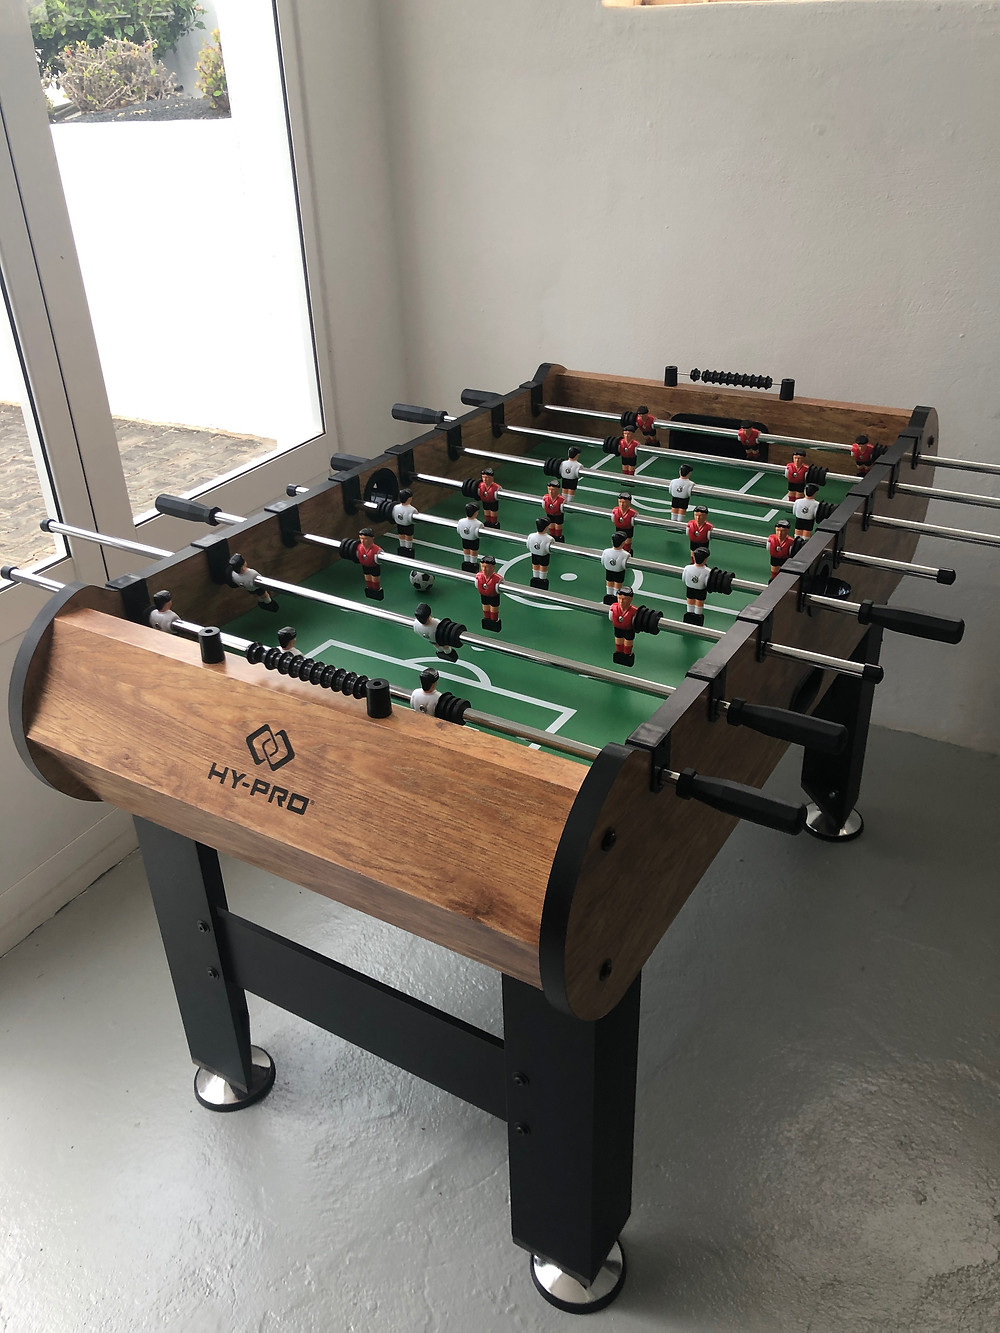 New Table football at Villa Antonio Lanzarote